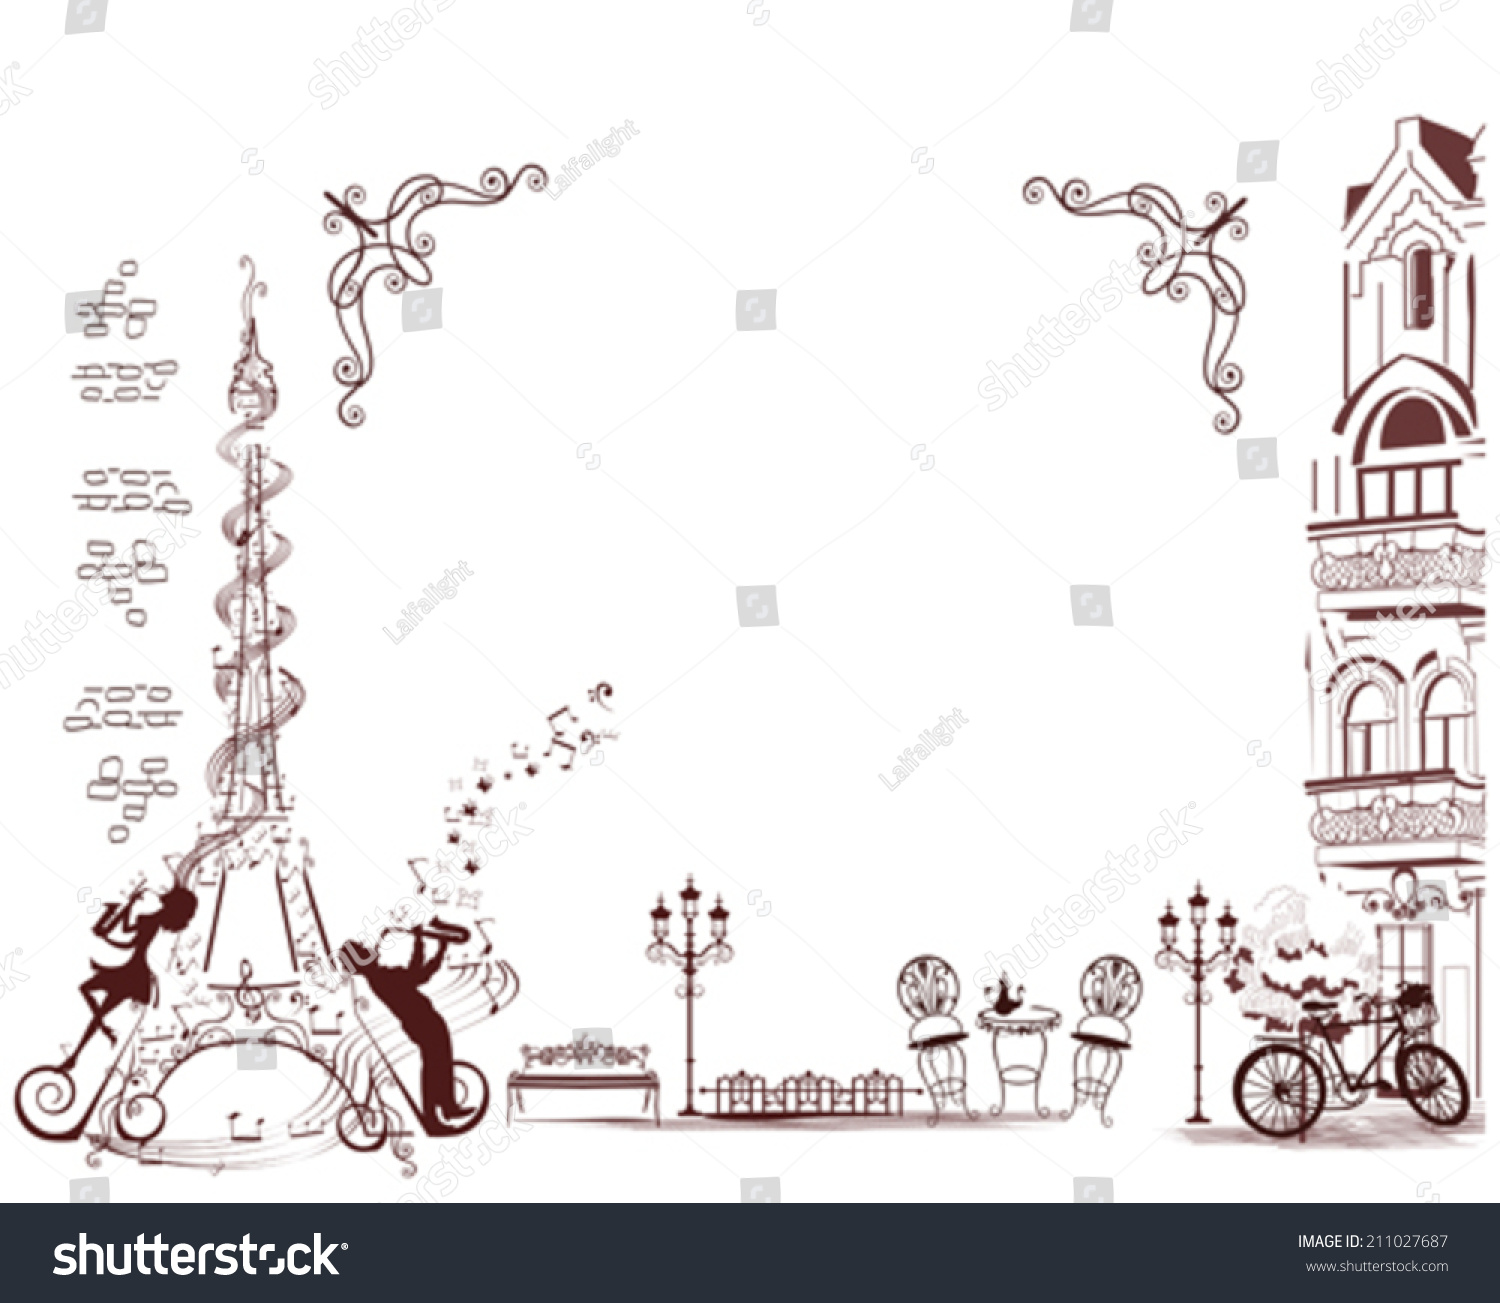 romantic eiffel tower decorated with a musical stave notes and musicians french frame